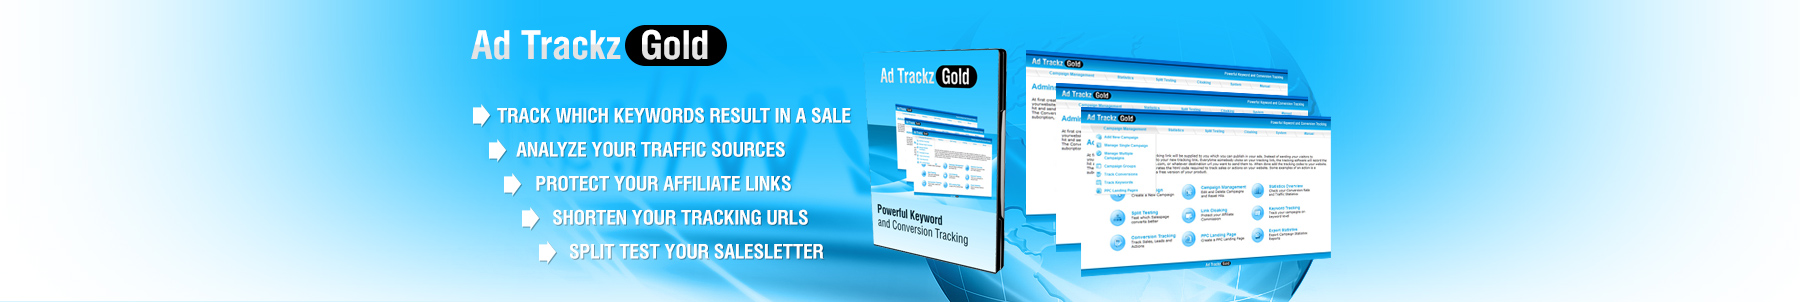 Ad Trackz Gold   Ad Tracking And Link Cloaking  Image of splashtop